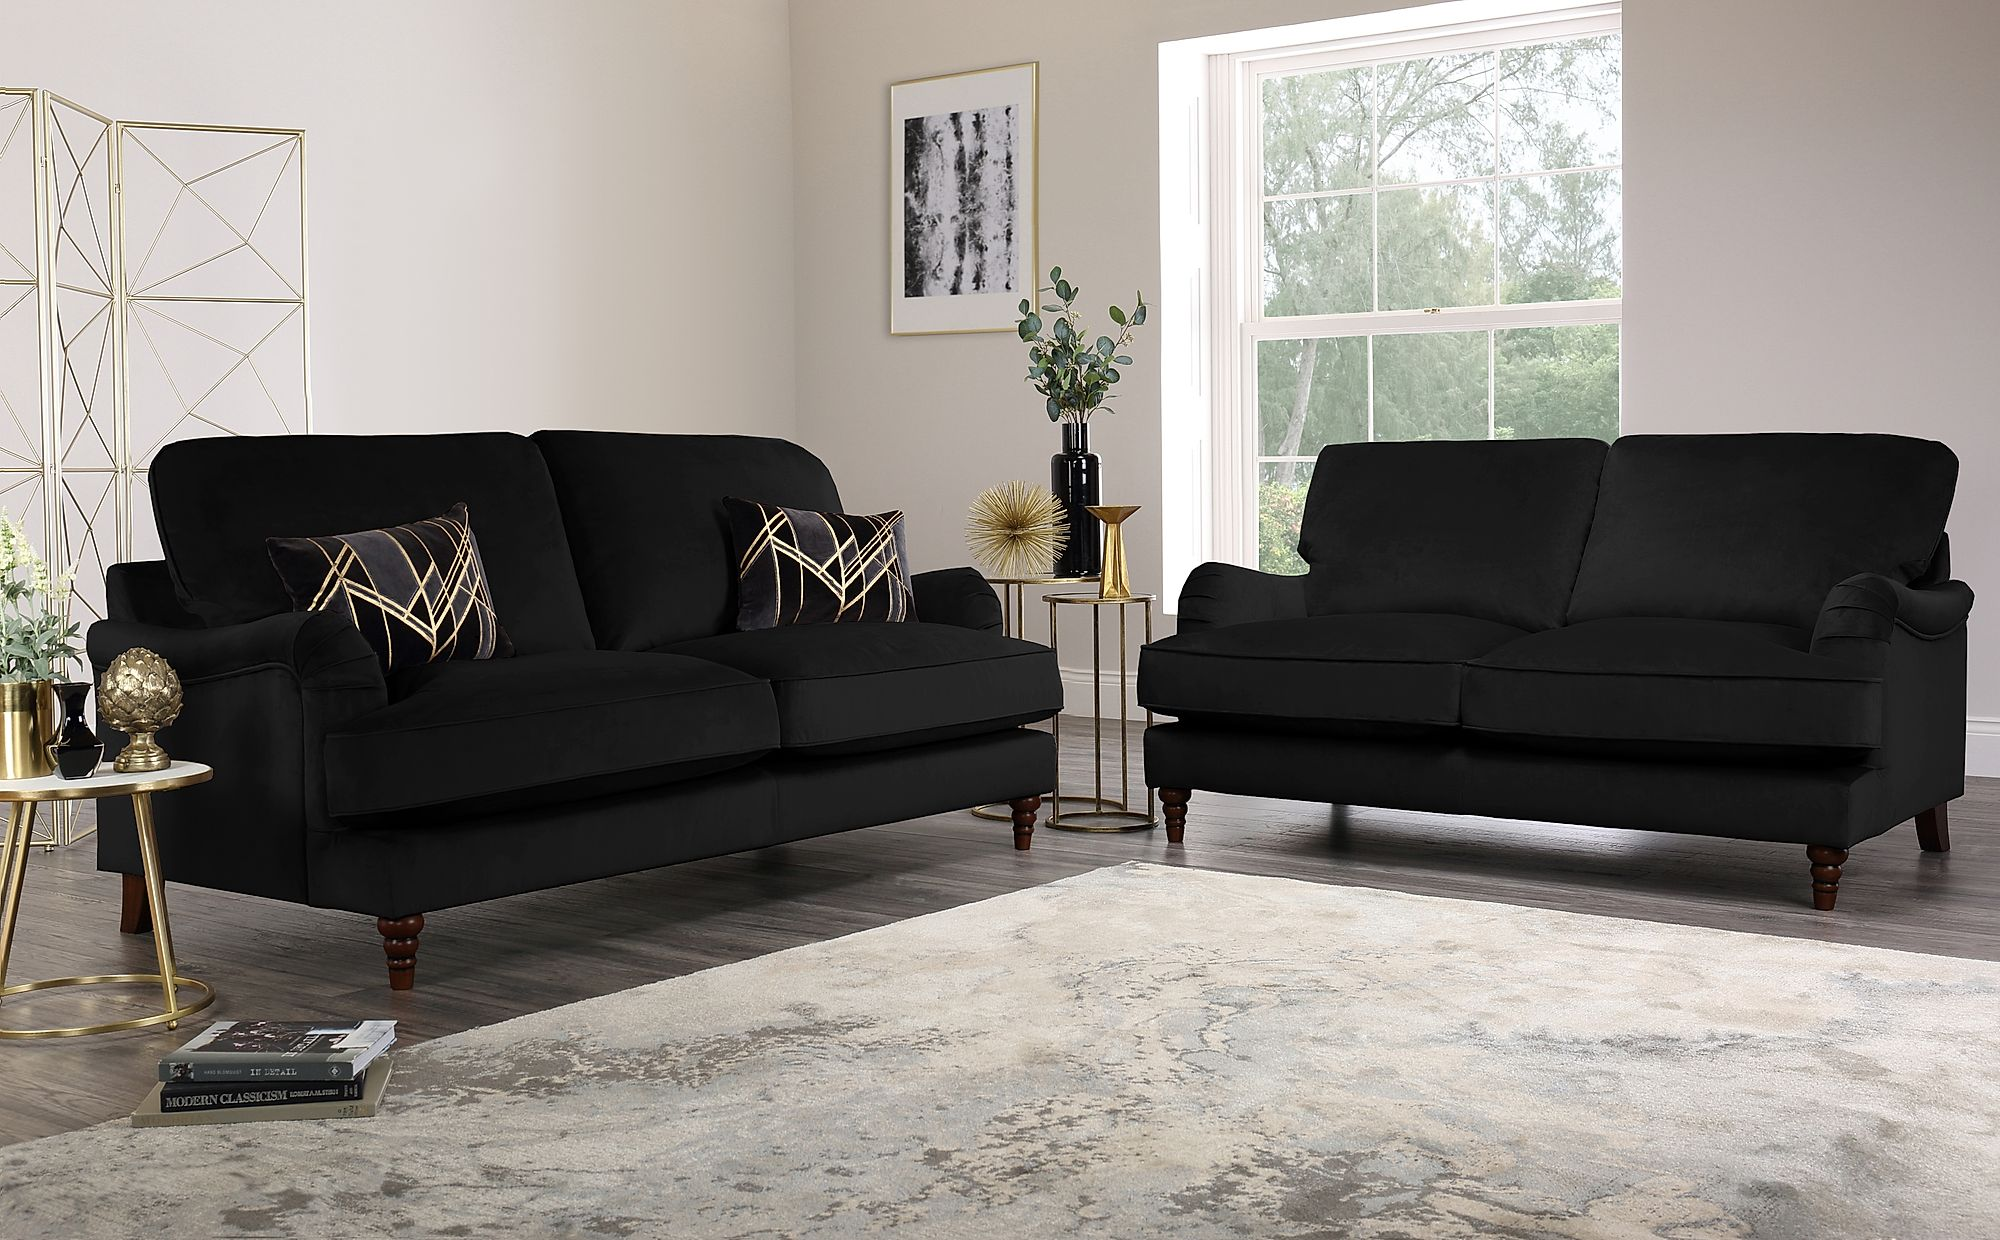 Charleston Black Velvet Sofa 3+2 Seater Only £1299.98 | Furniture Choice